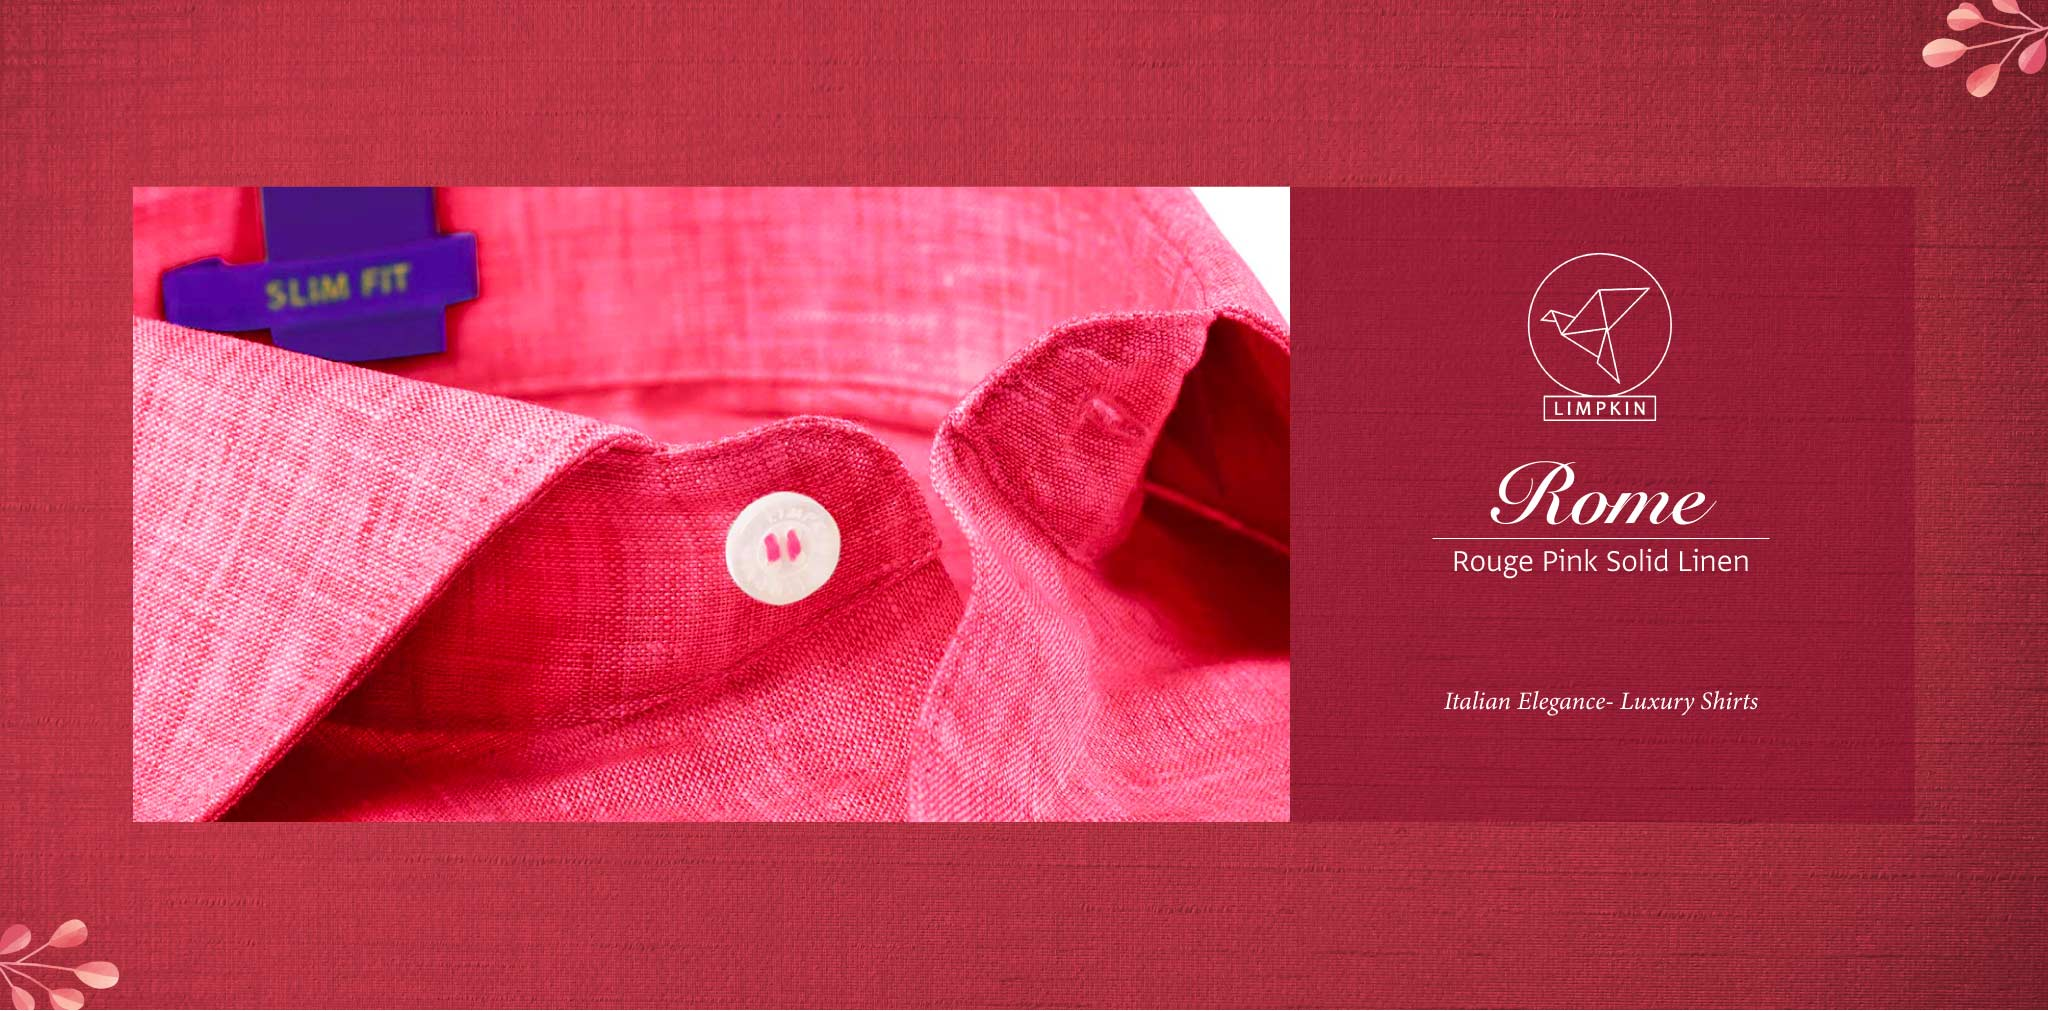 Rome- Rouge Pink Solid Linen- 66's Lea Pure Italian Linen- Delivery from 4th August - Banner